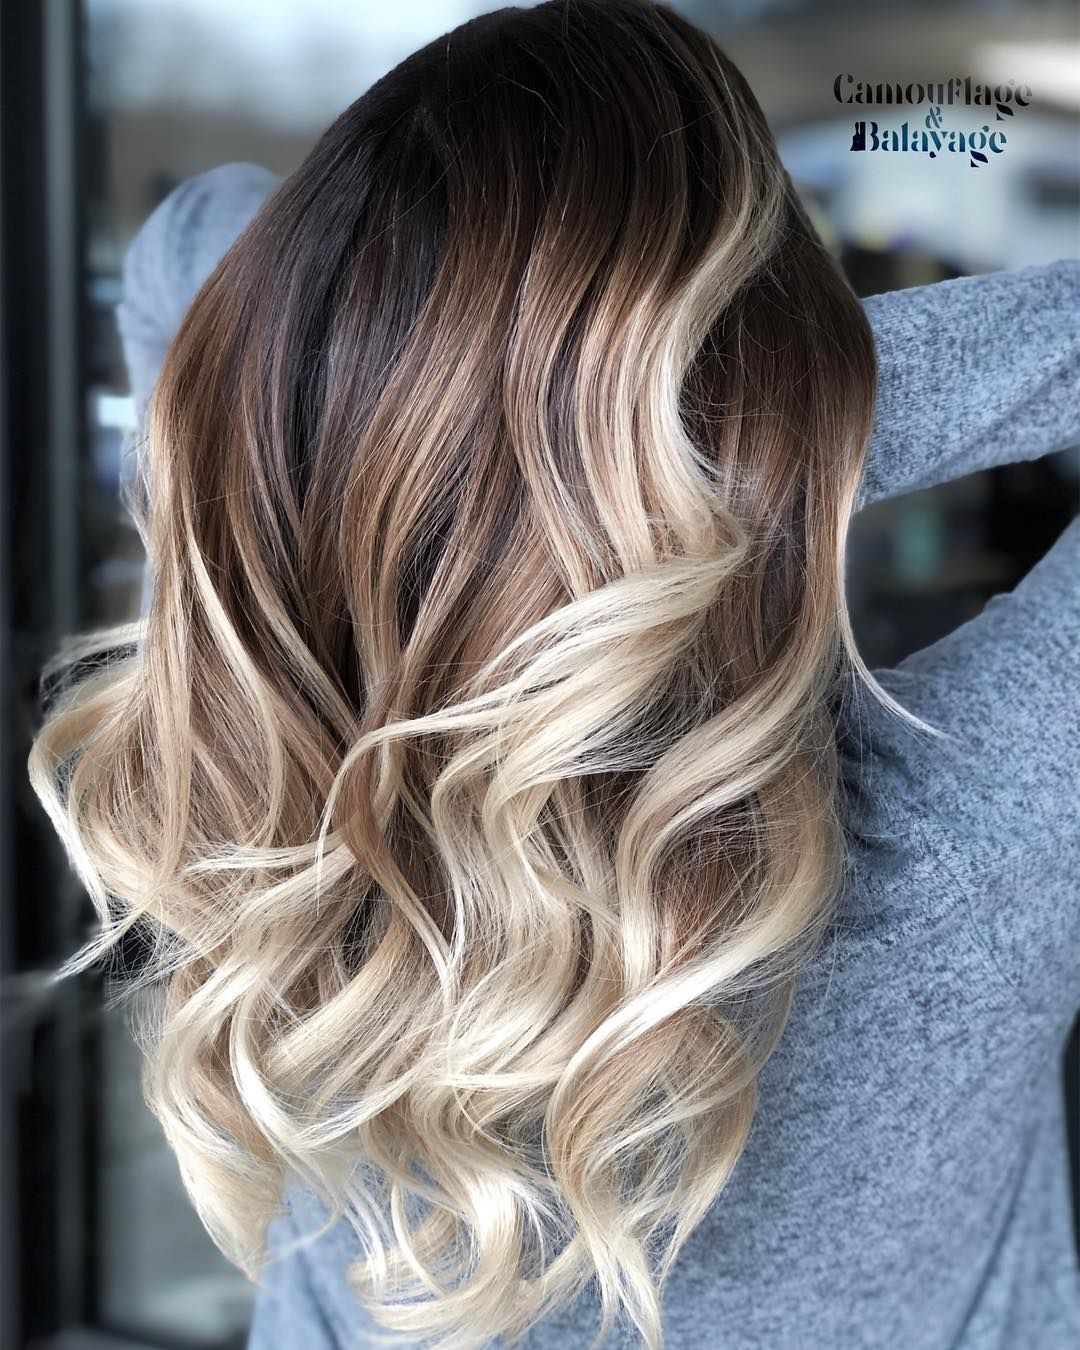 Https Latesthaircolors Com Wp Content Uploads 2019 04 34 Latest Hair Color Ideas For 2019 Get Your Hairstyle I Hair Styles Latest Hair Color Light Brown Hair